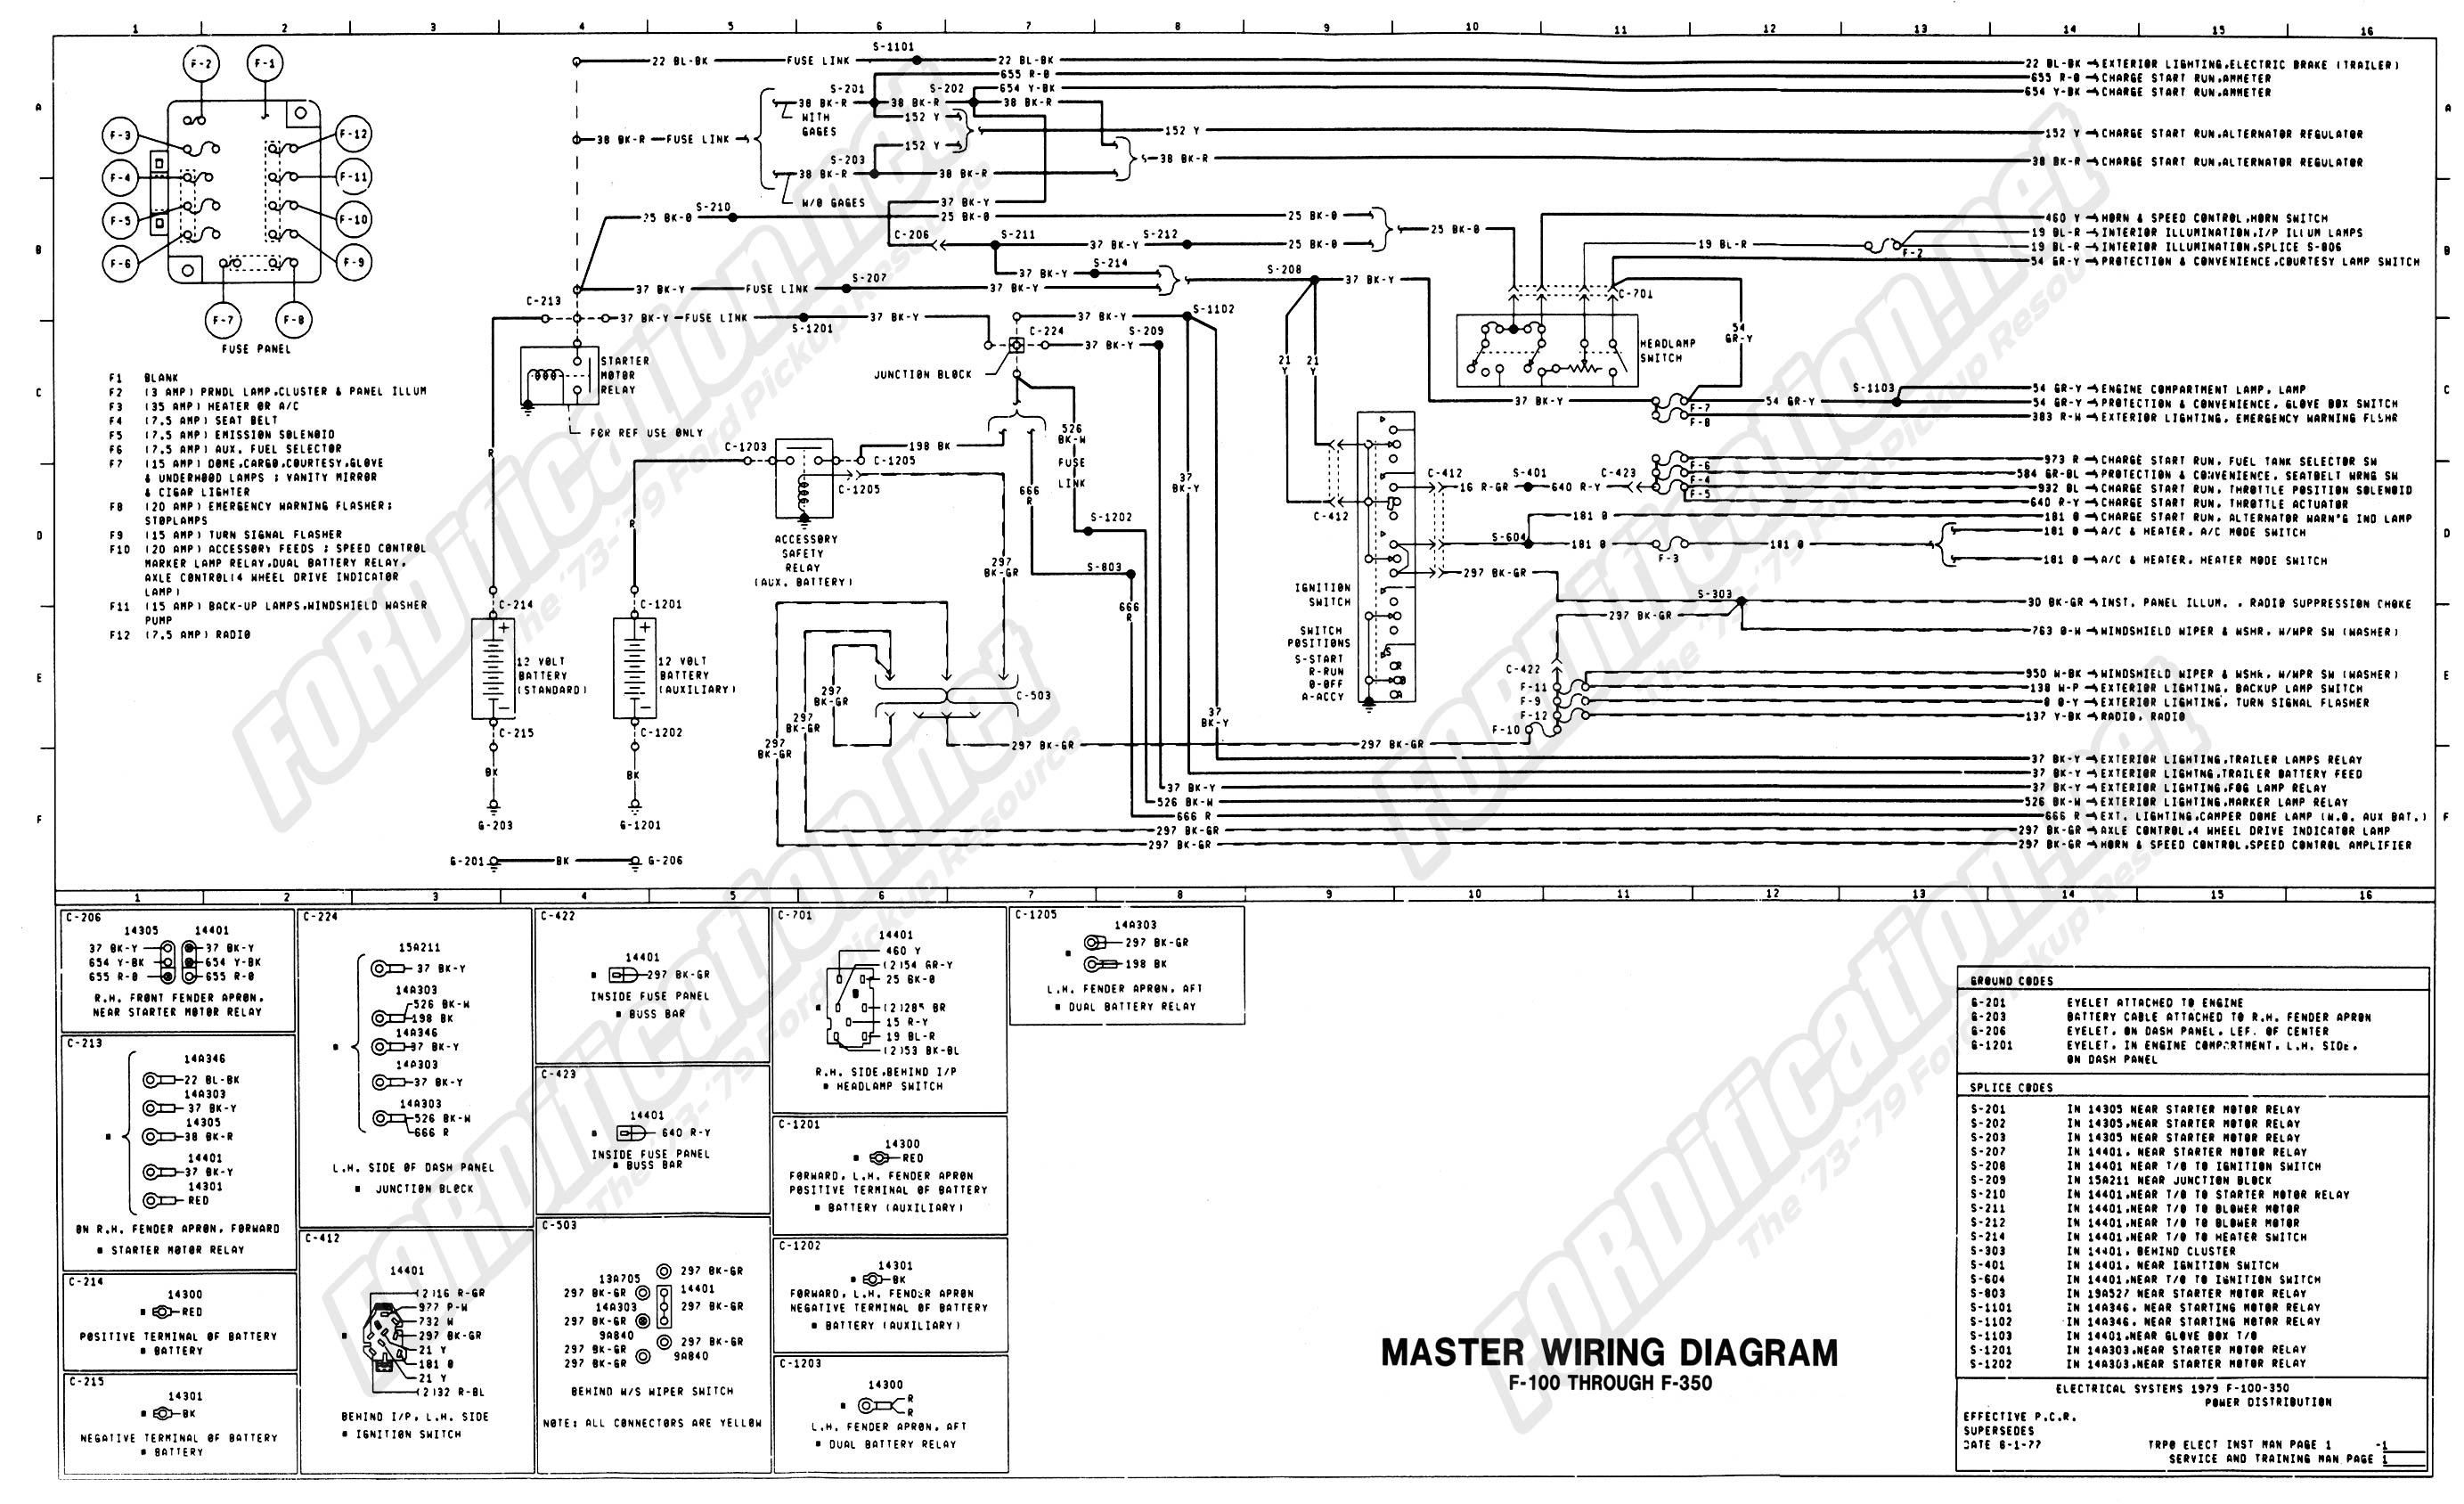 1972 ford f100 ignition switch wiring diagram saturn sl1 radio 1973 1979 truck diagrams and schematics